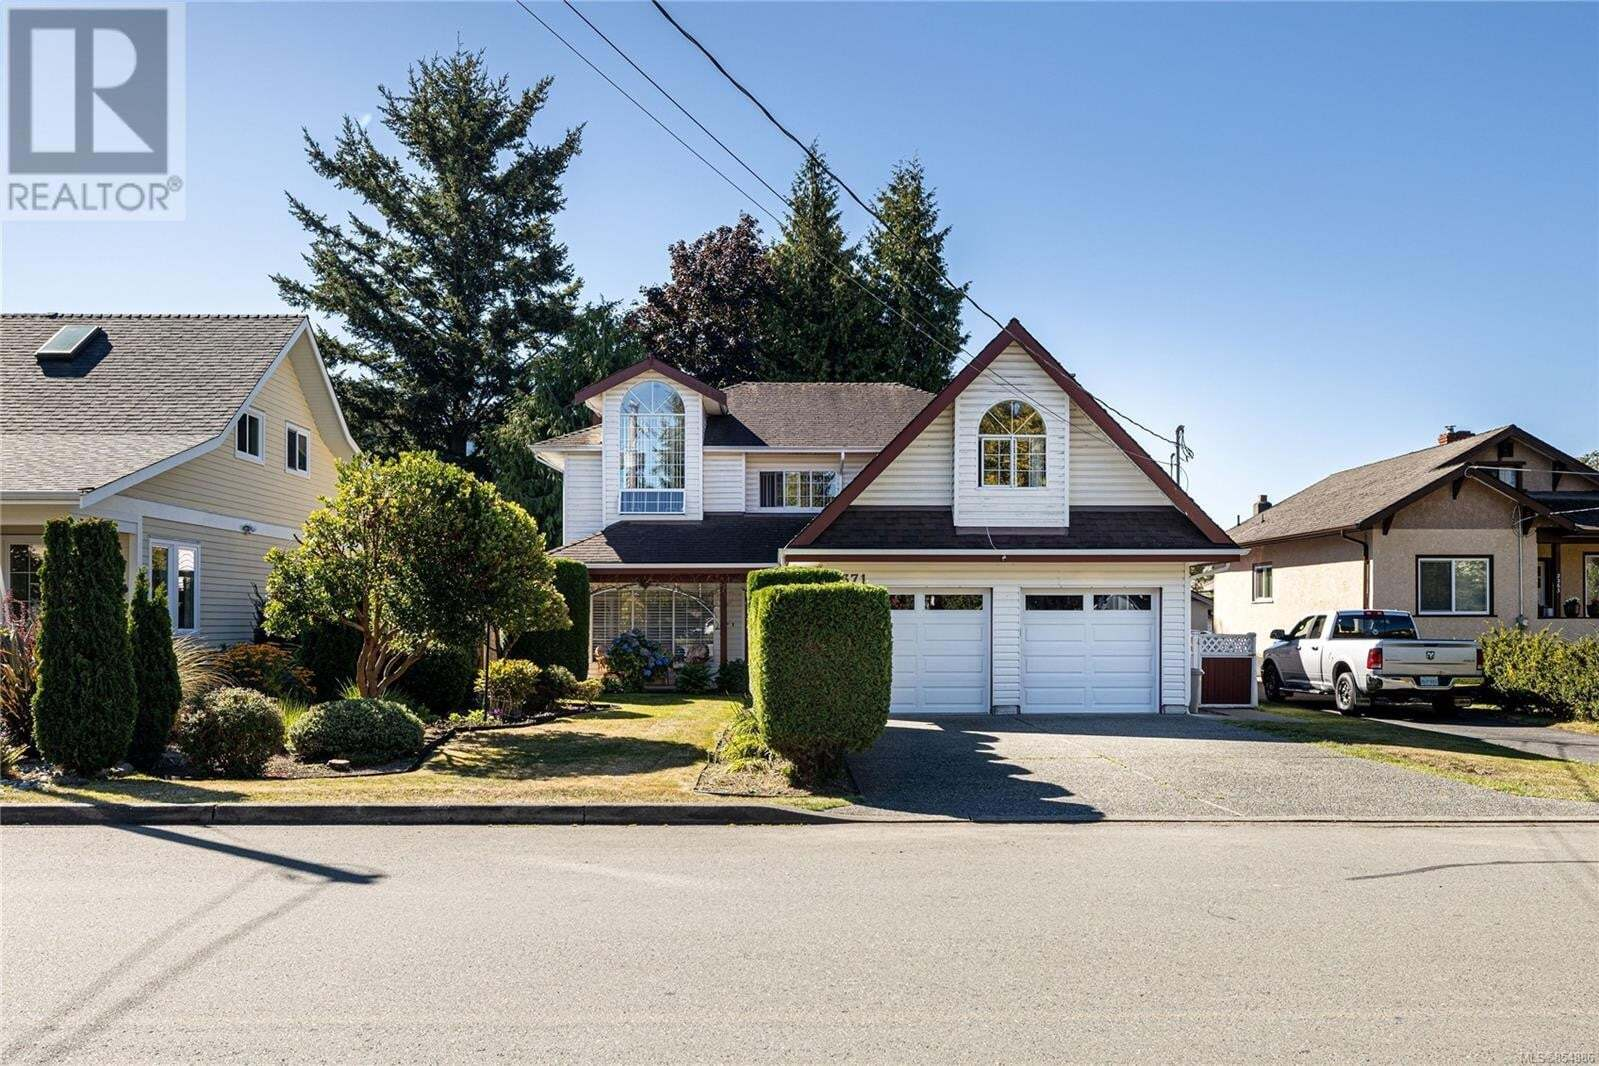 House for sale at 2371 Brethour Ave Sidney British Columbia - MLS: 854886